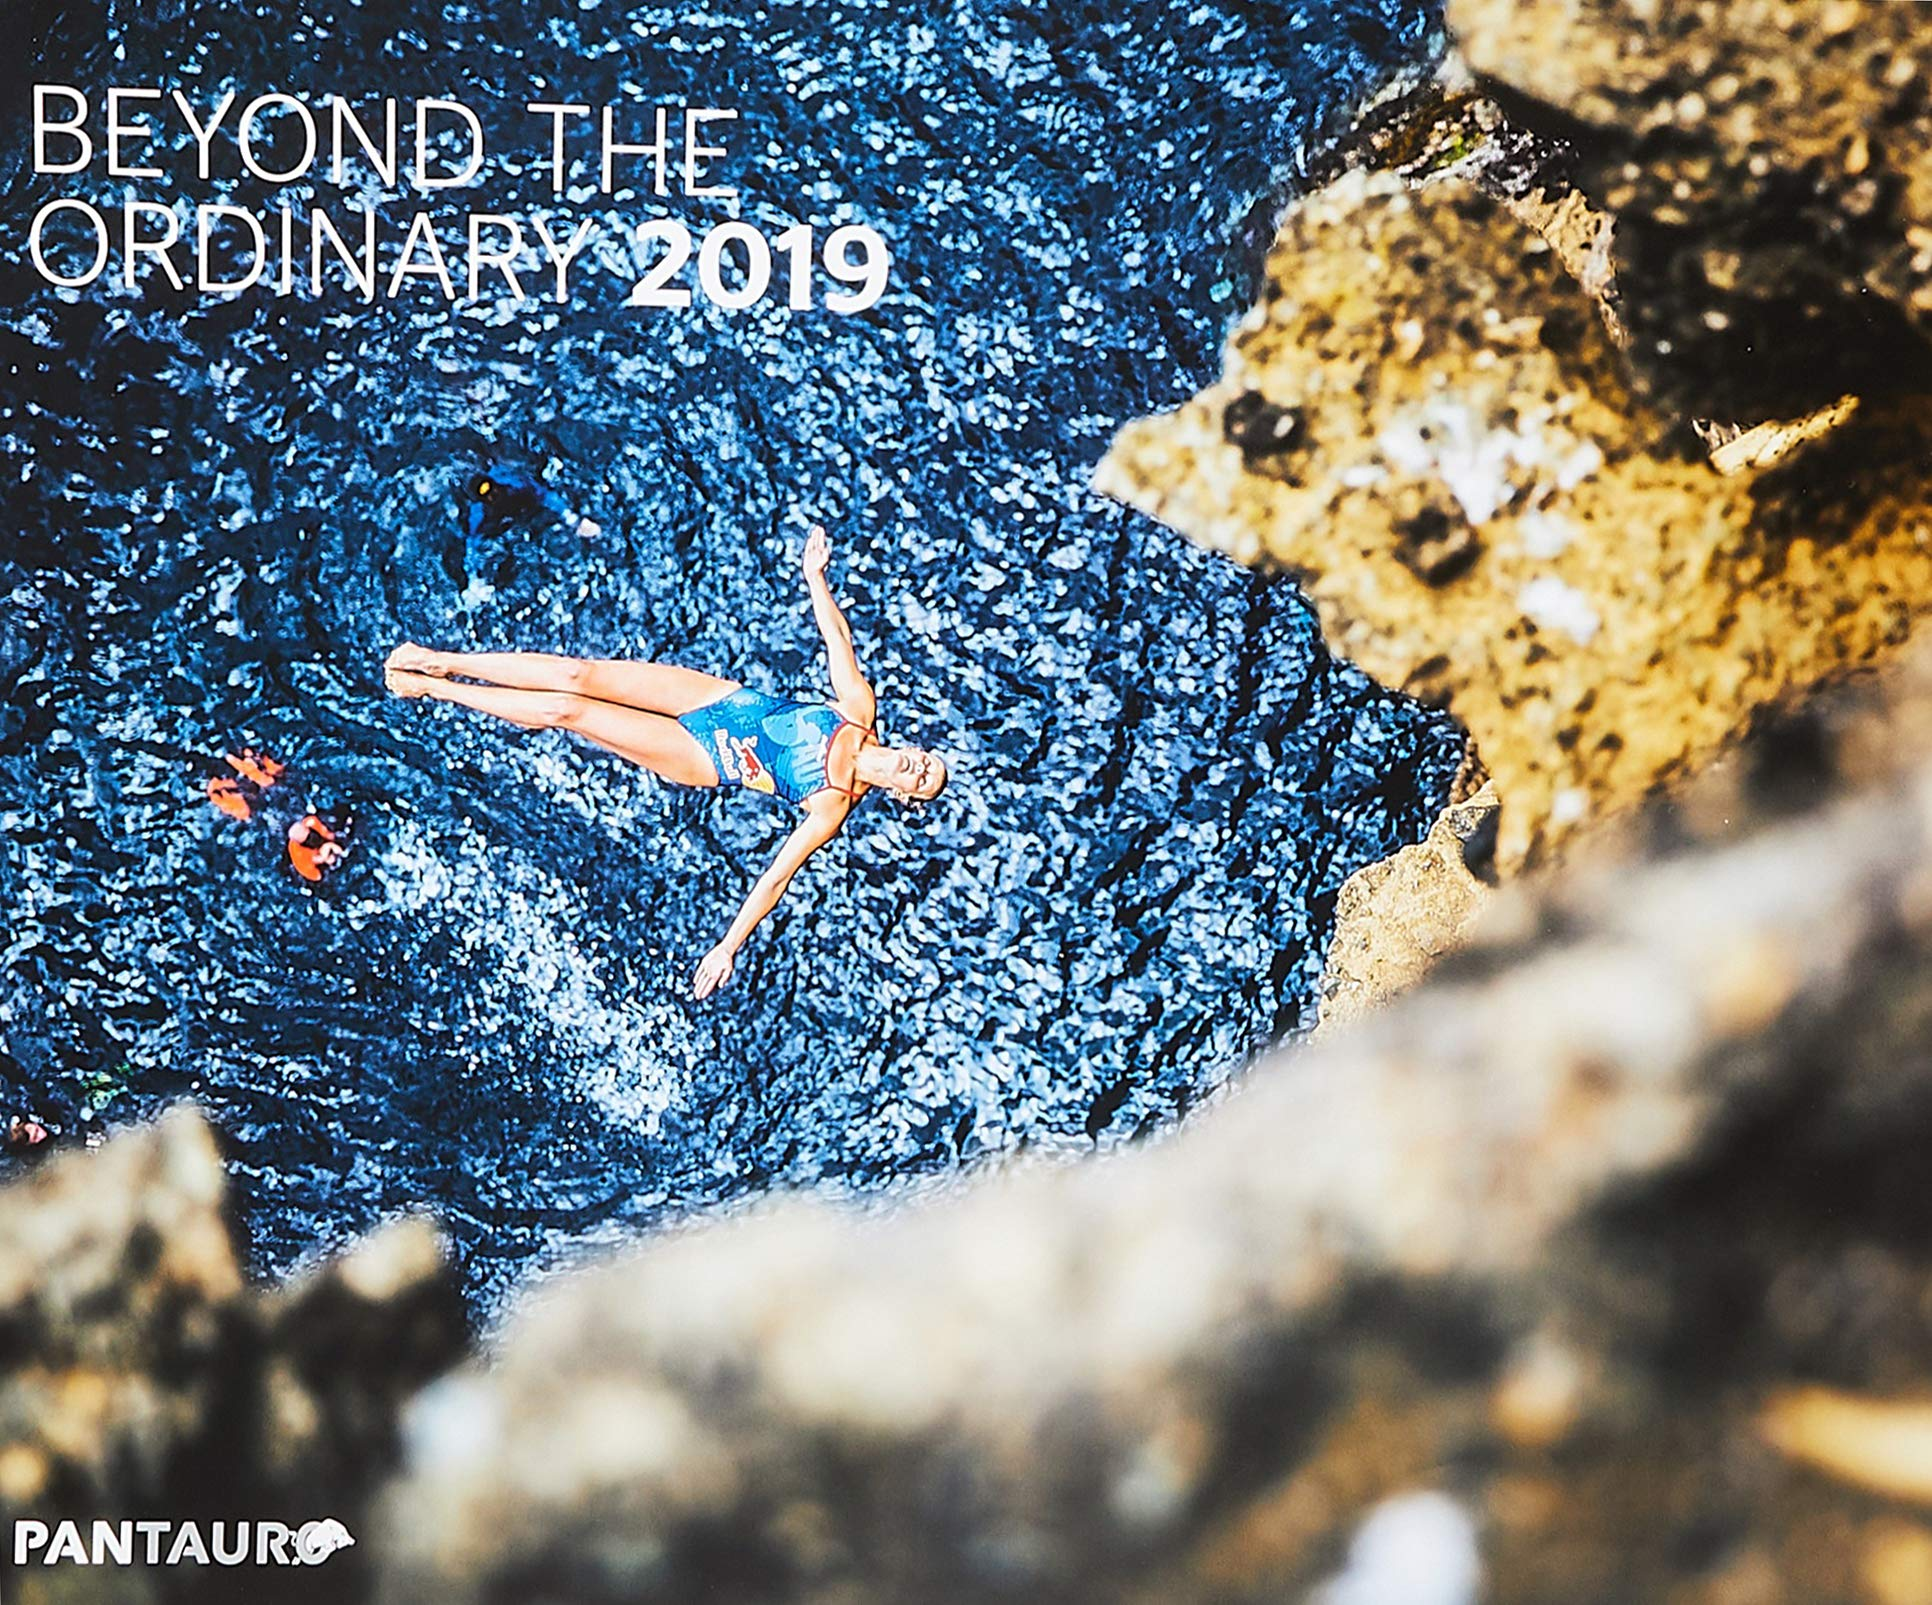 Beyond the Ordinary 2019